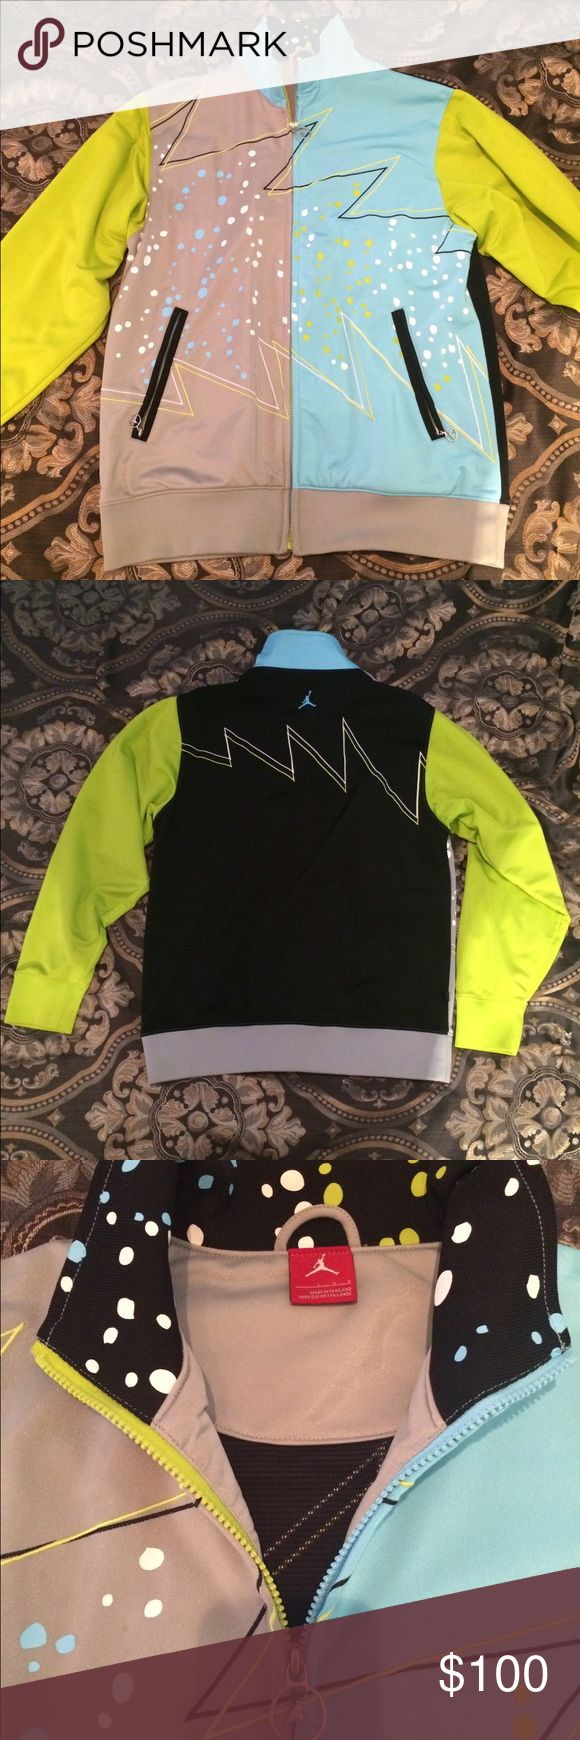 Nike Air Jordan jacket Awesome colorful Jordan jacket with mesh liner. In excellent condition, has only ever been dry cleaned. Make an offer! Jordan Jackets & Coats Performance Jackets